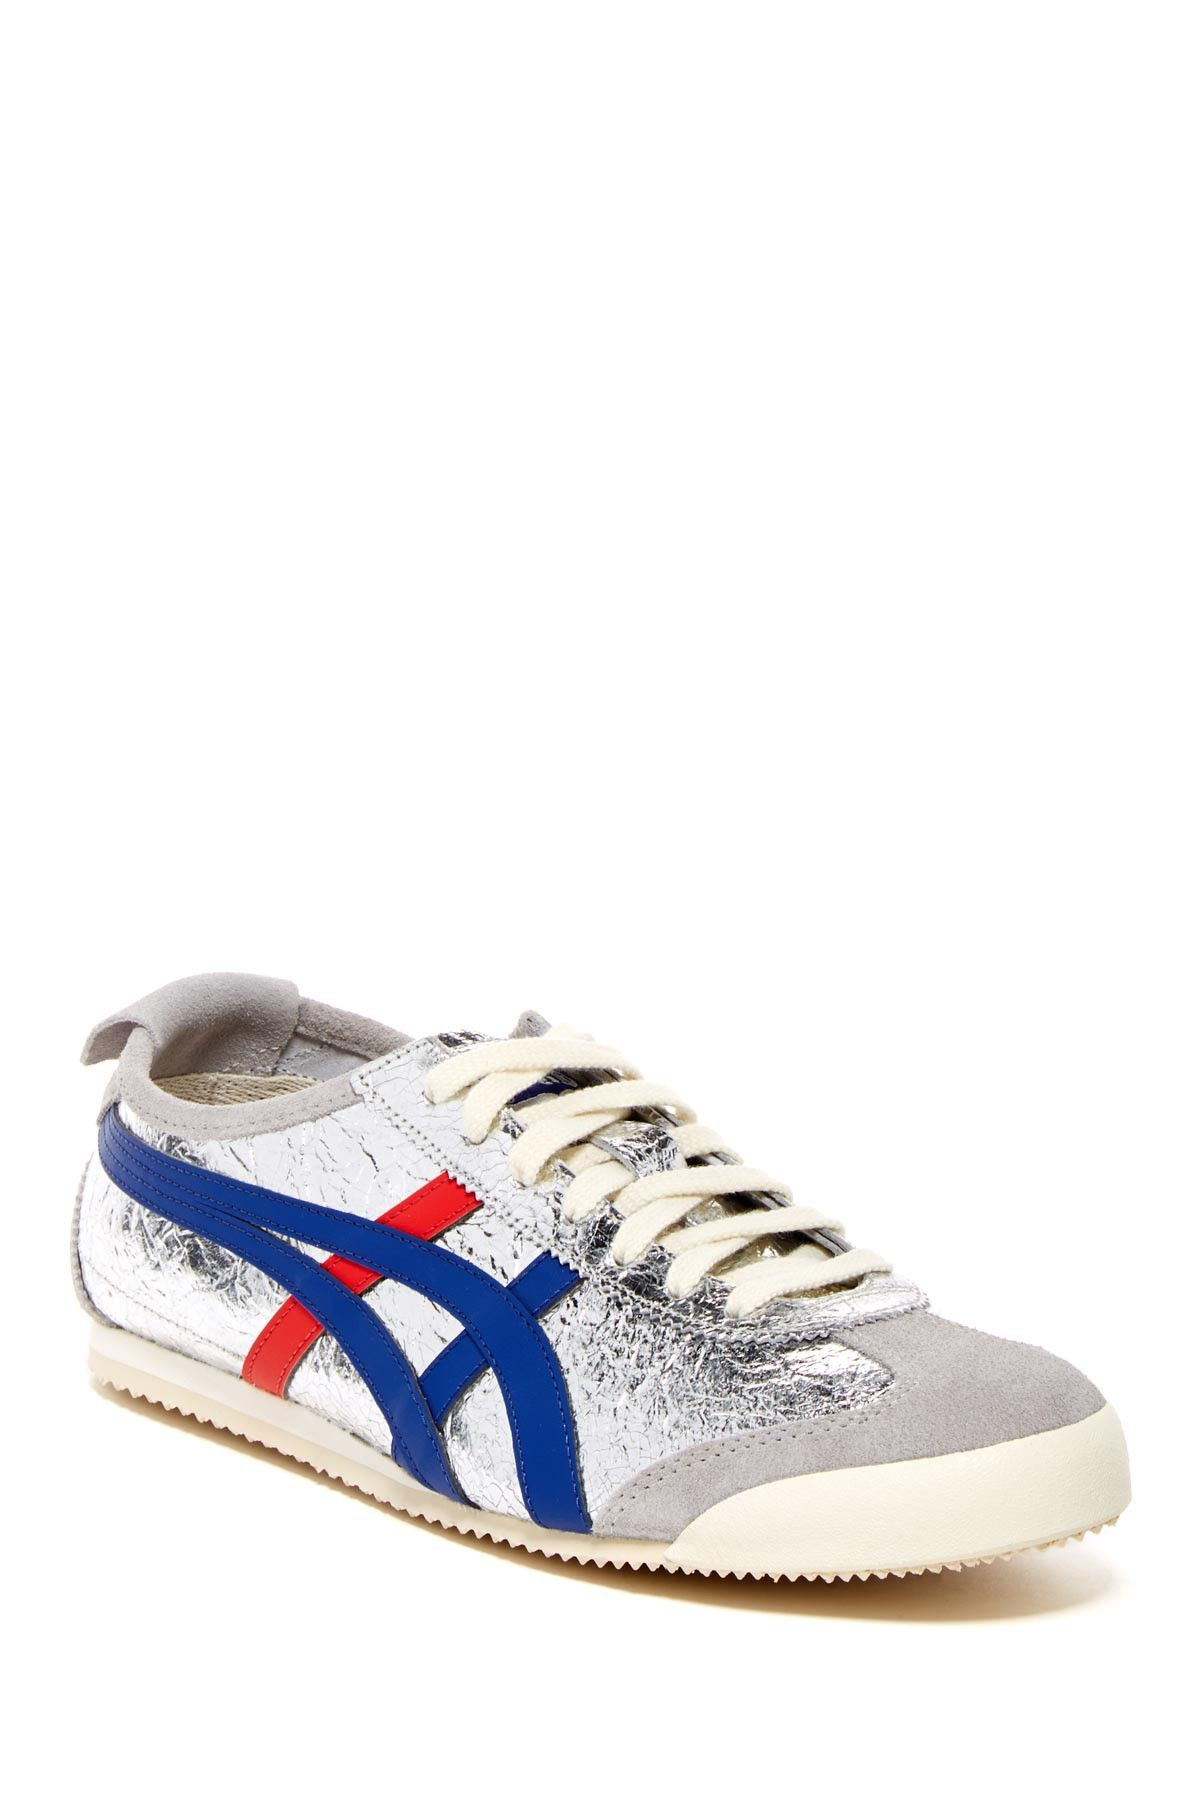 Pin on Sneakers: Onitsuka Tiger Mexico 66